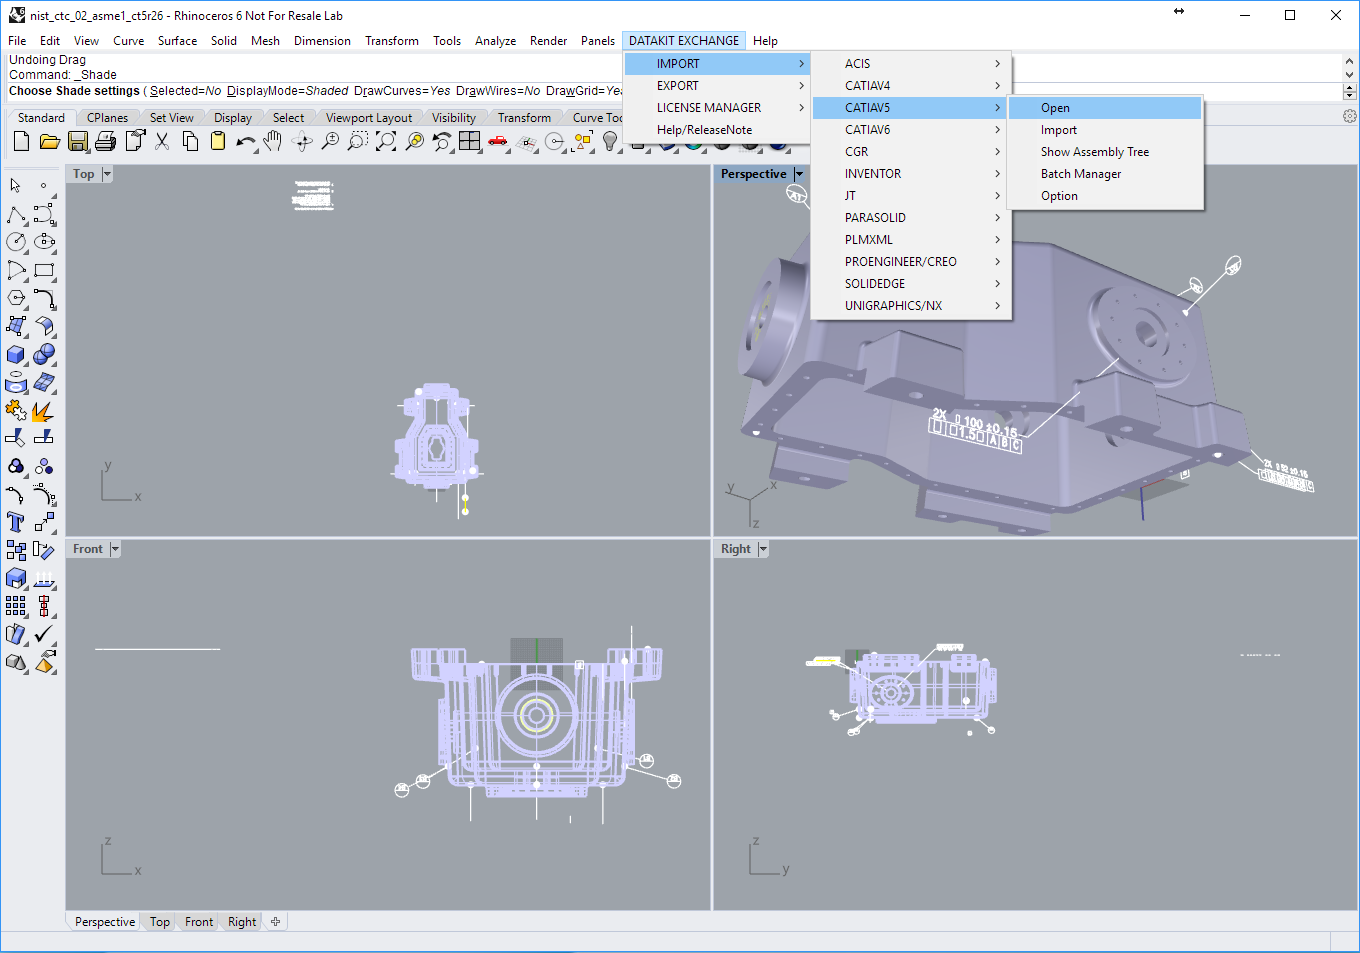 Datakit CAD import & export plug-ins are now available with